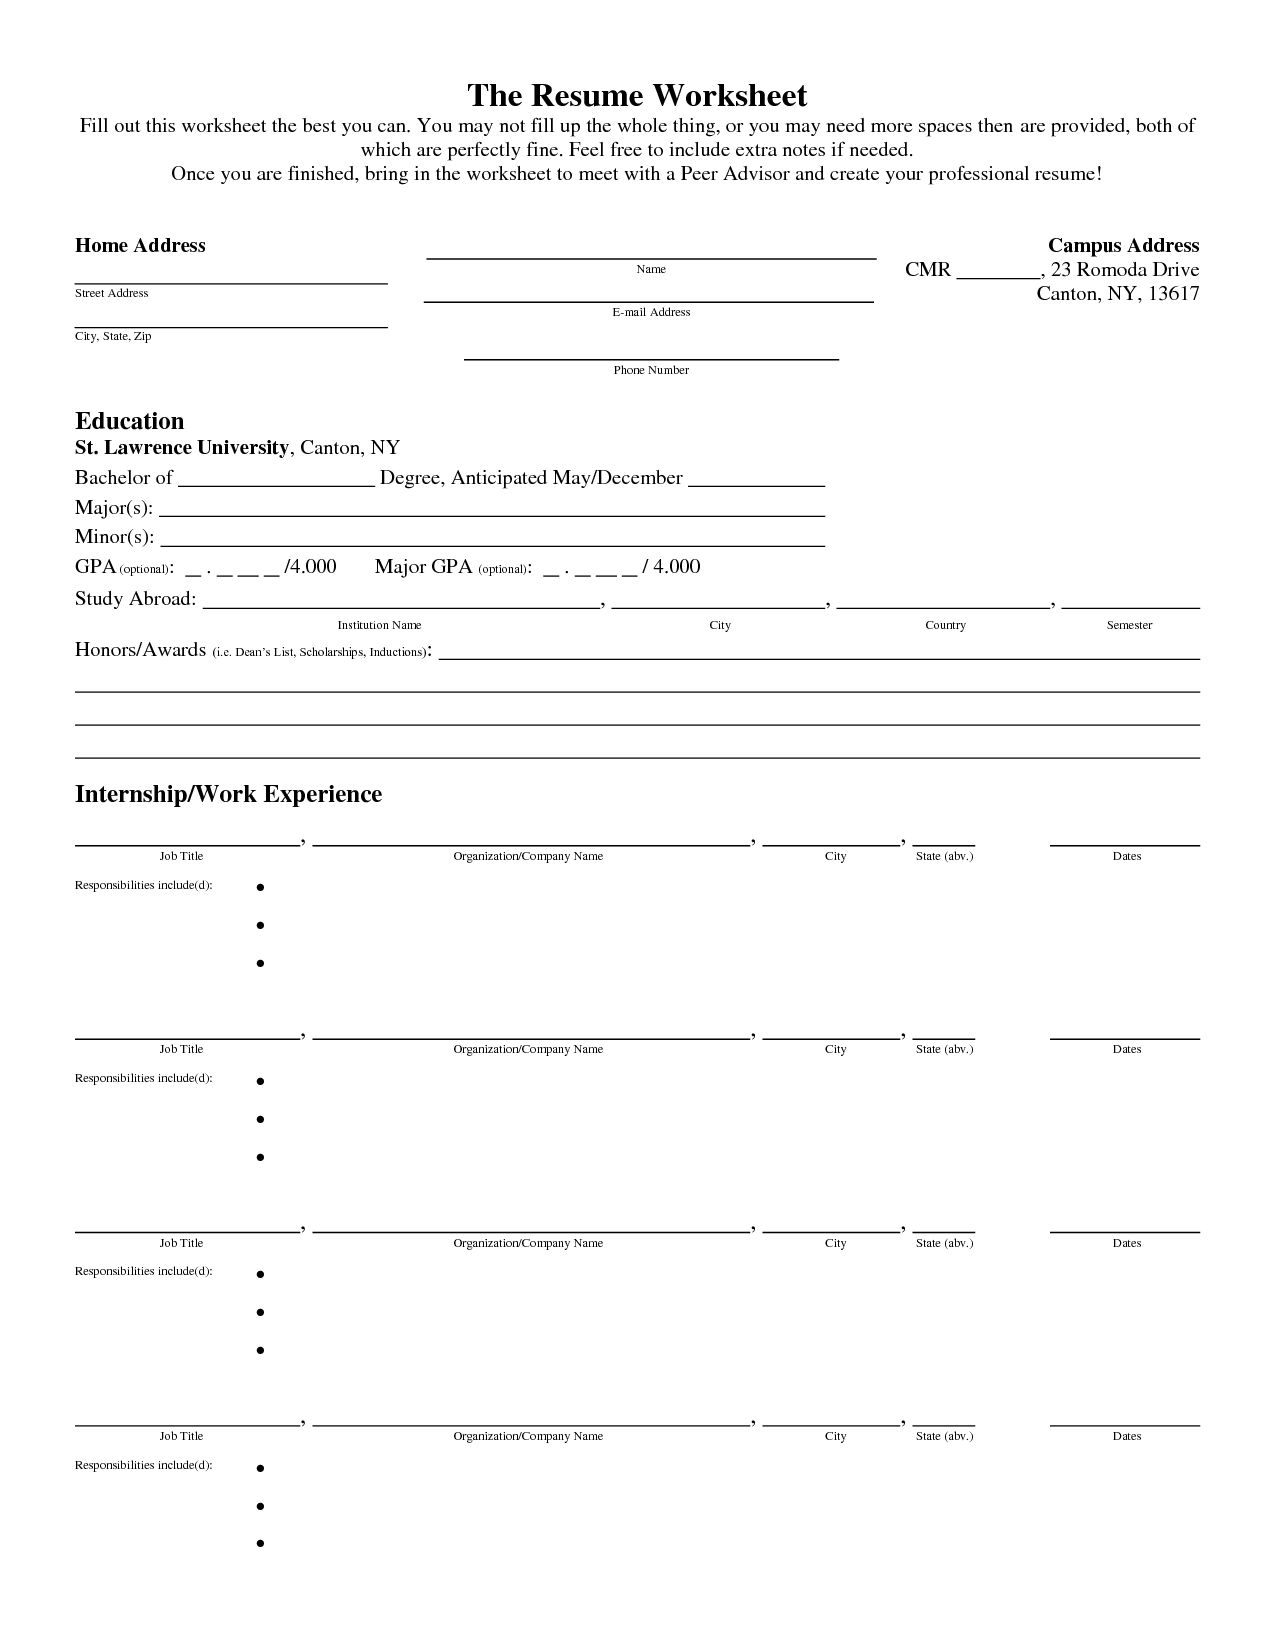 Interior Design D Ry Worksheet